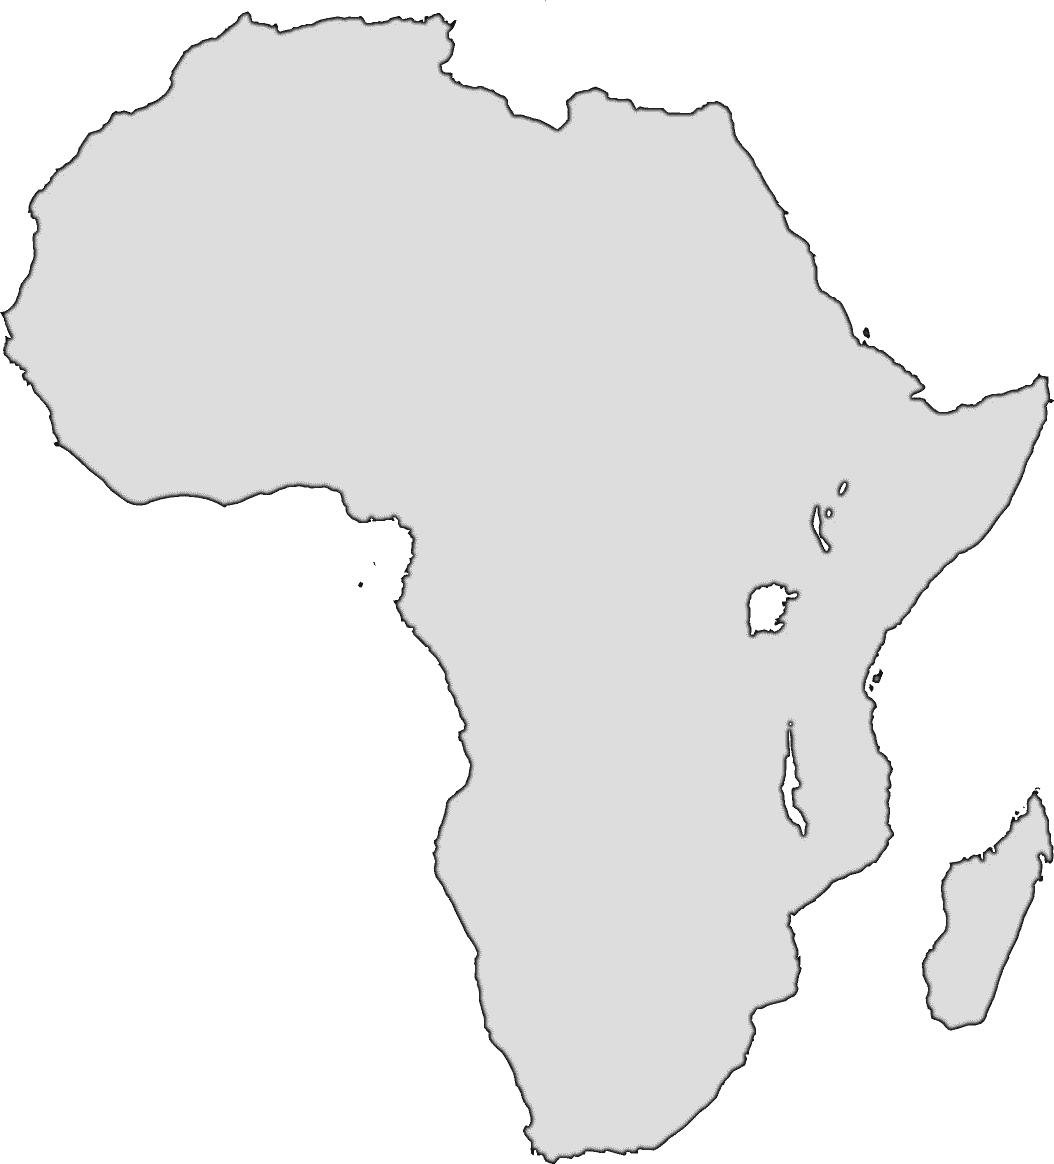 Africa Large BW.png